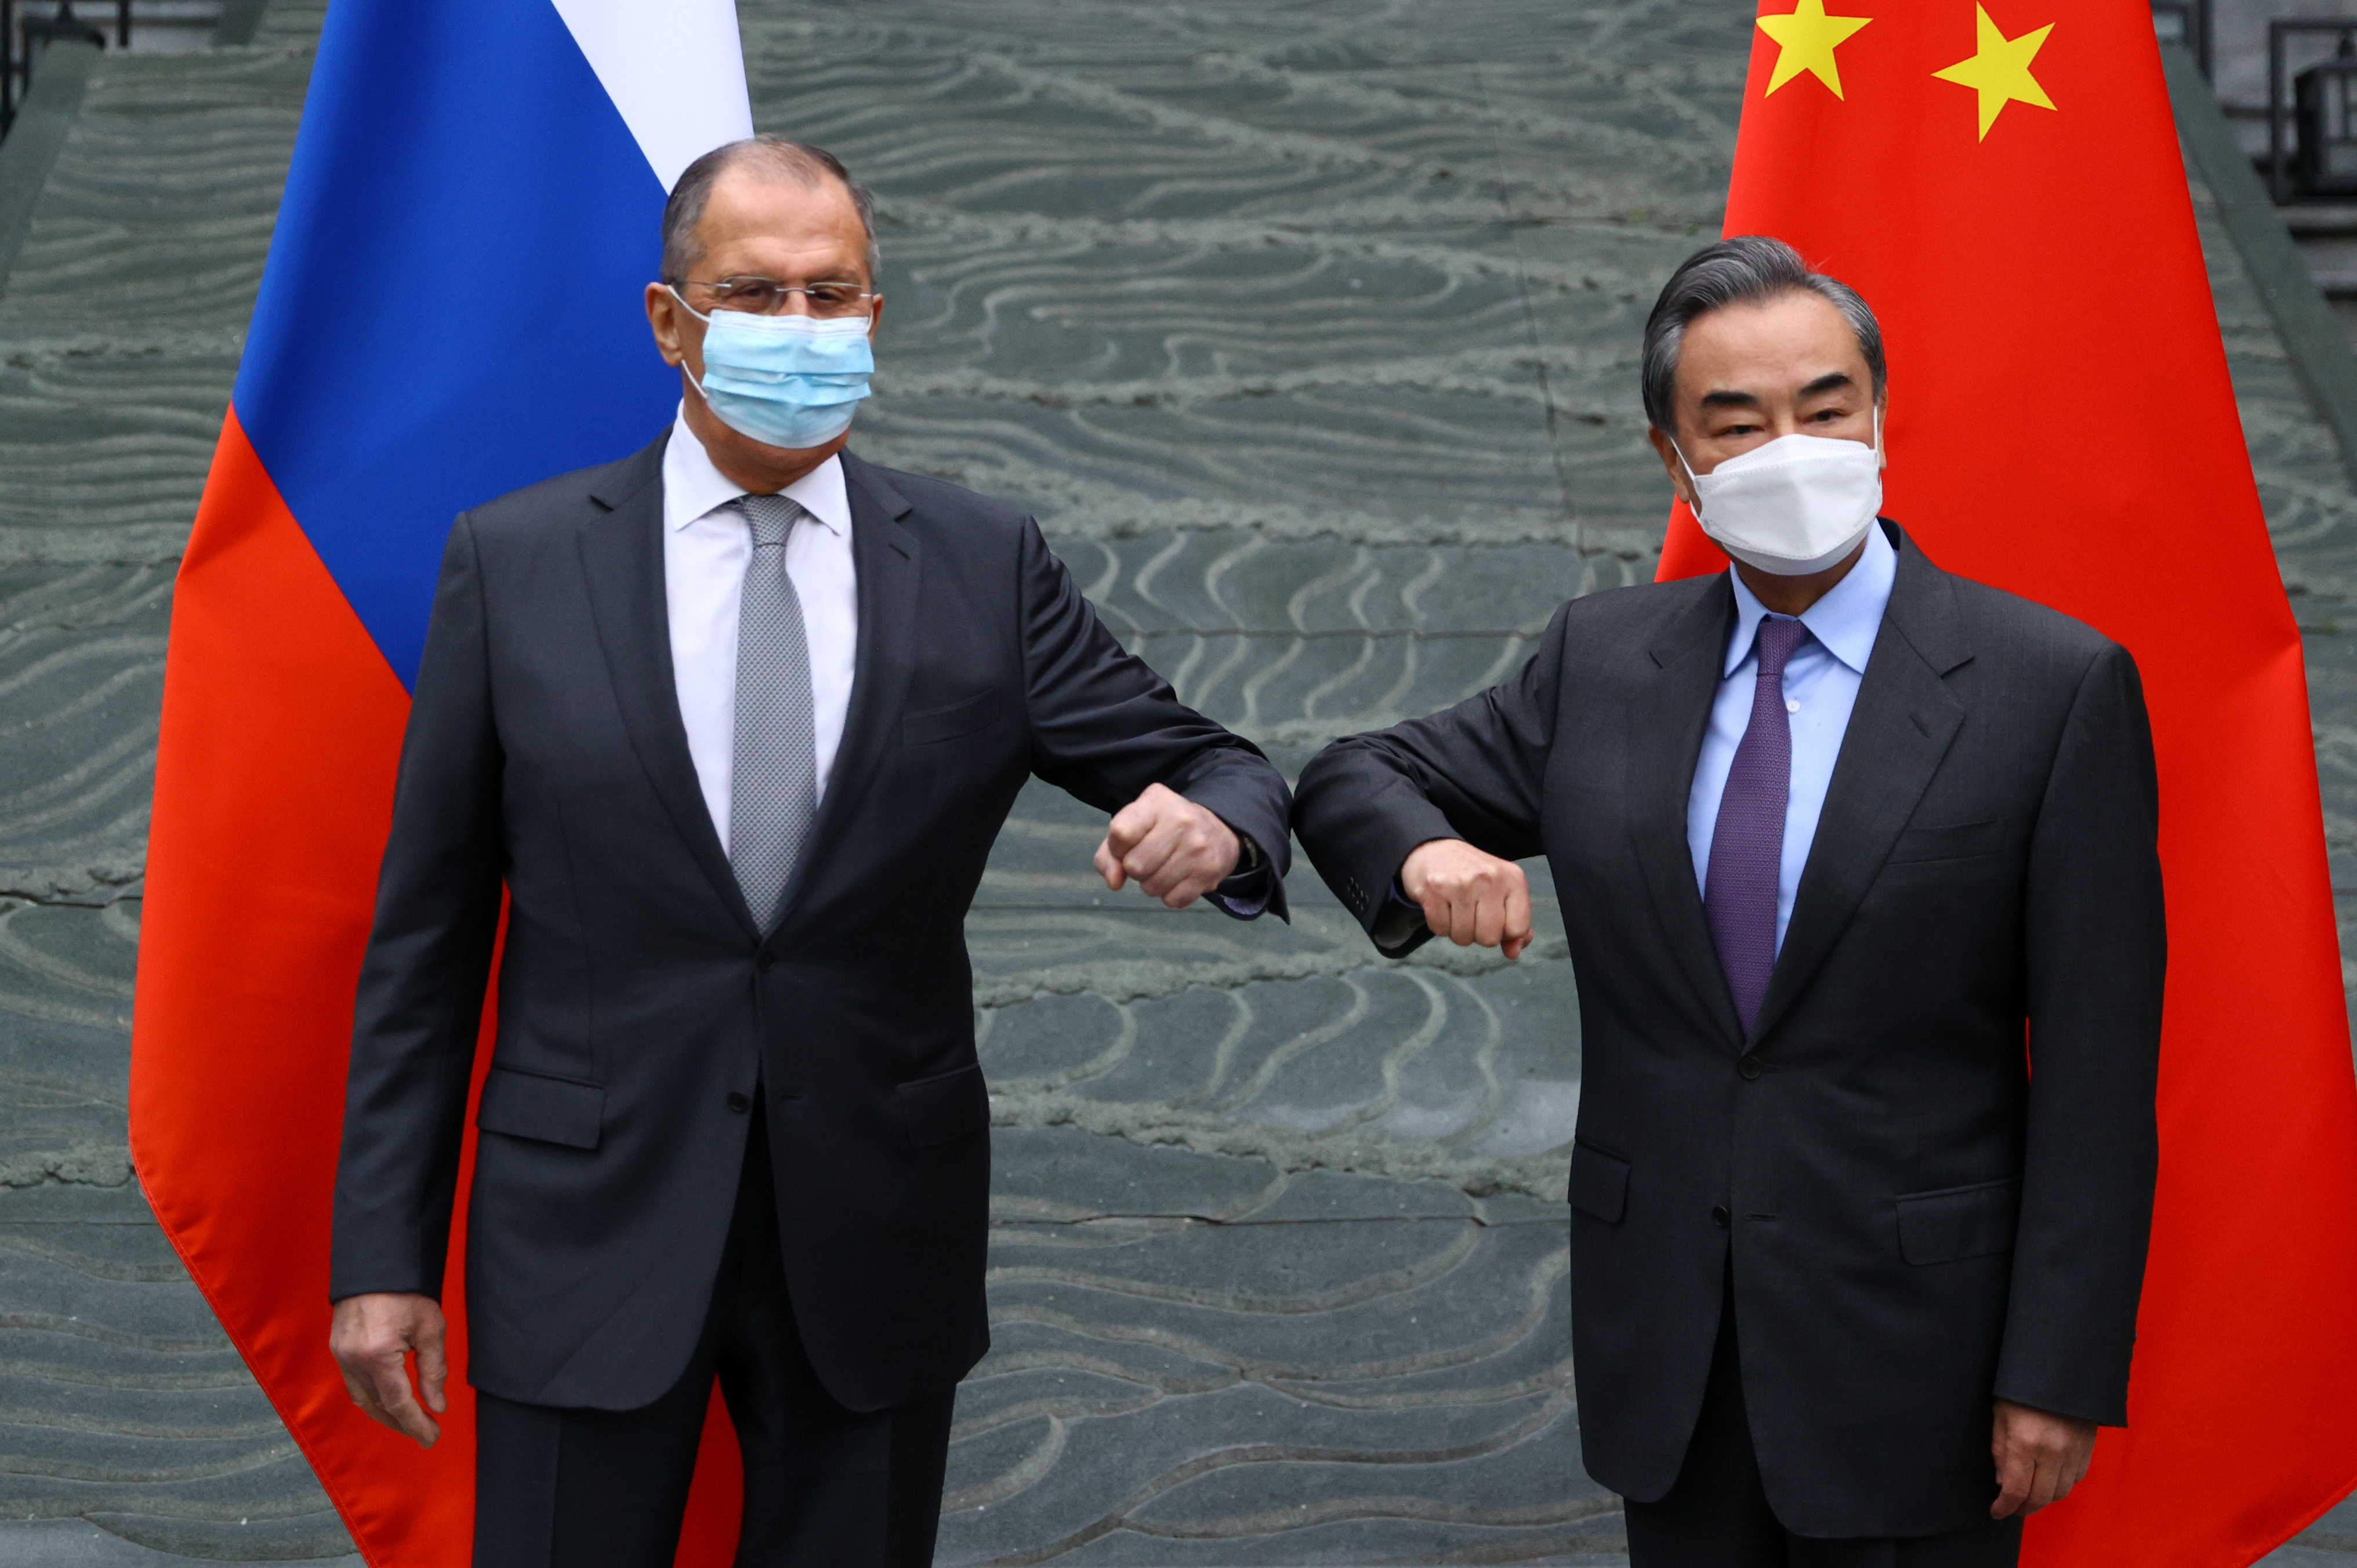 Russia's Foreign Minister Sergei Lavrov and China's State Councilor and Foreign Minister Wang Yi wearing protective face masks pose for a picture during a meeting in Guilin, China March 22, 2021. Russian Foreign Ministry/Handout via REUTERS